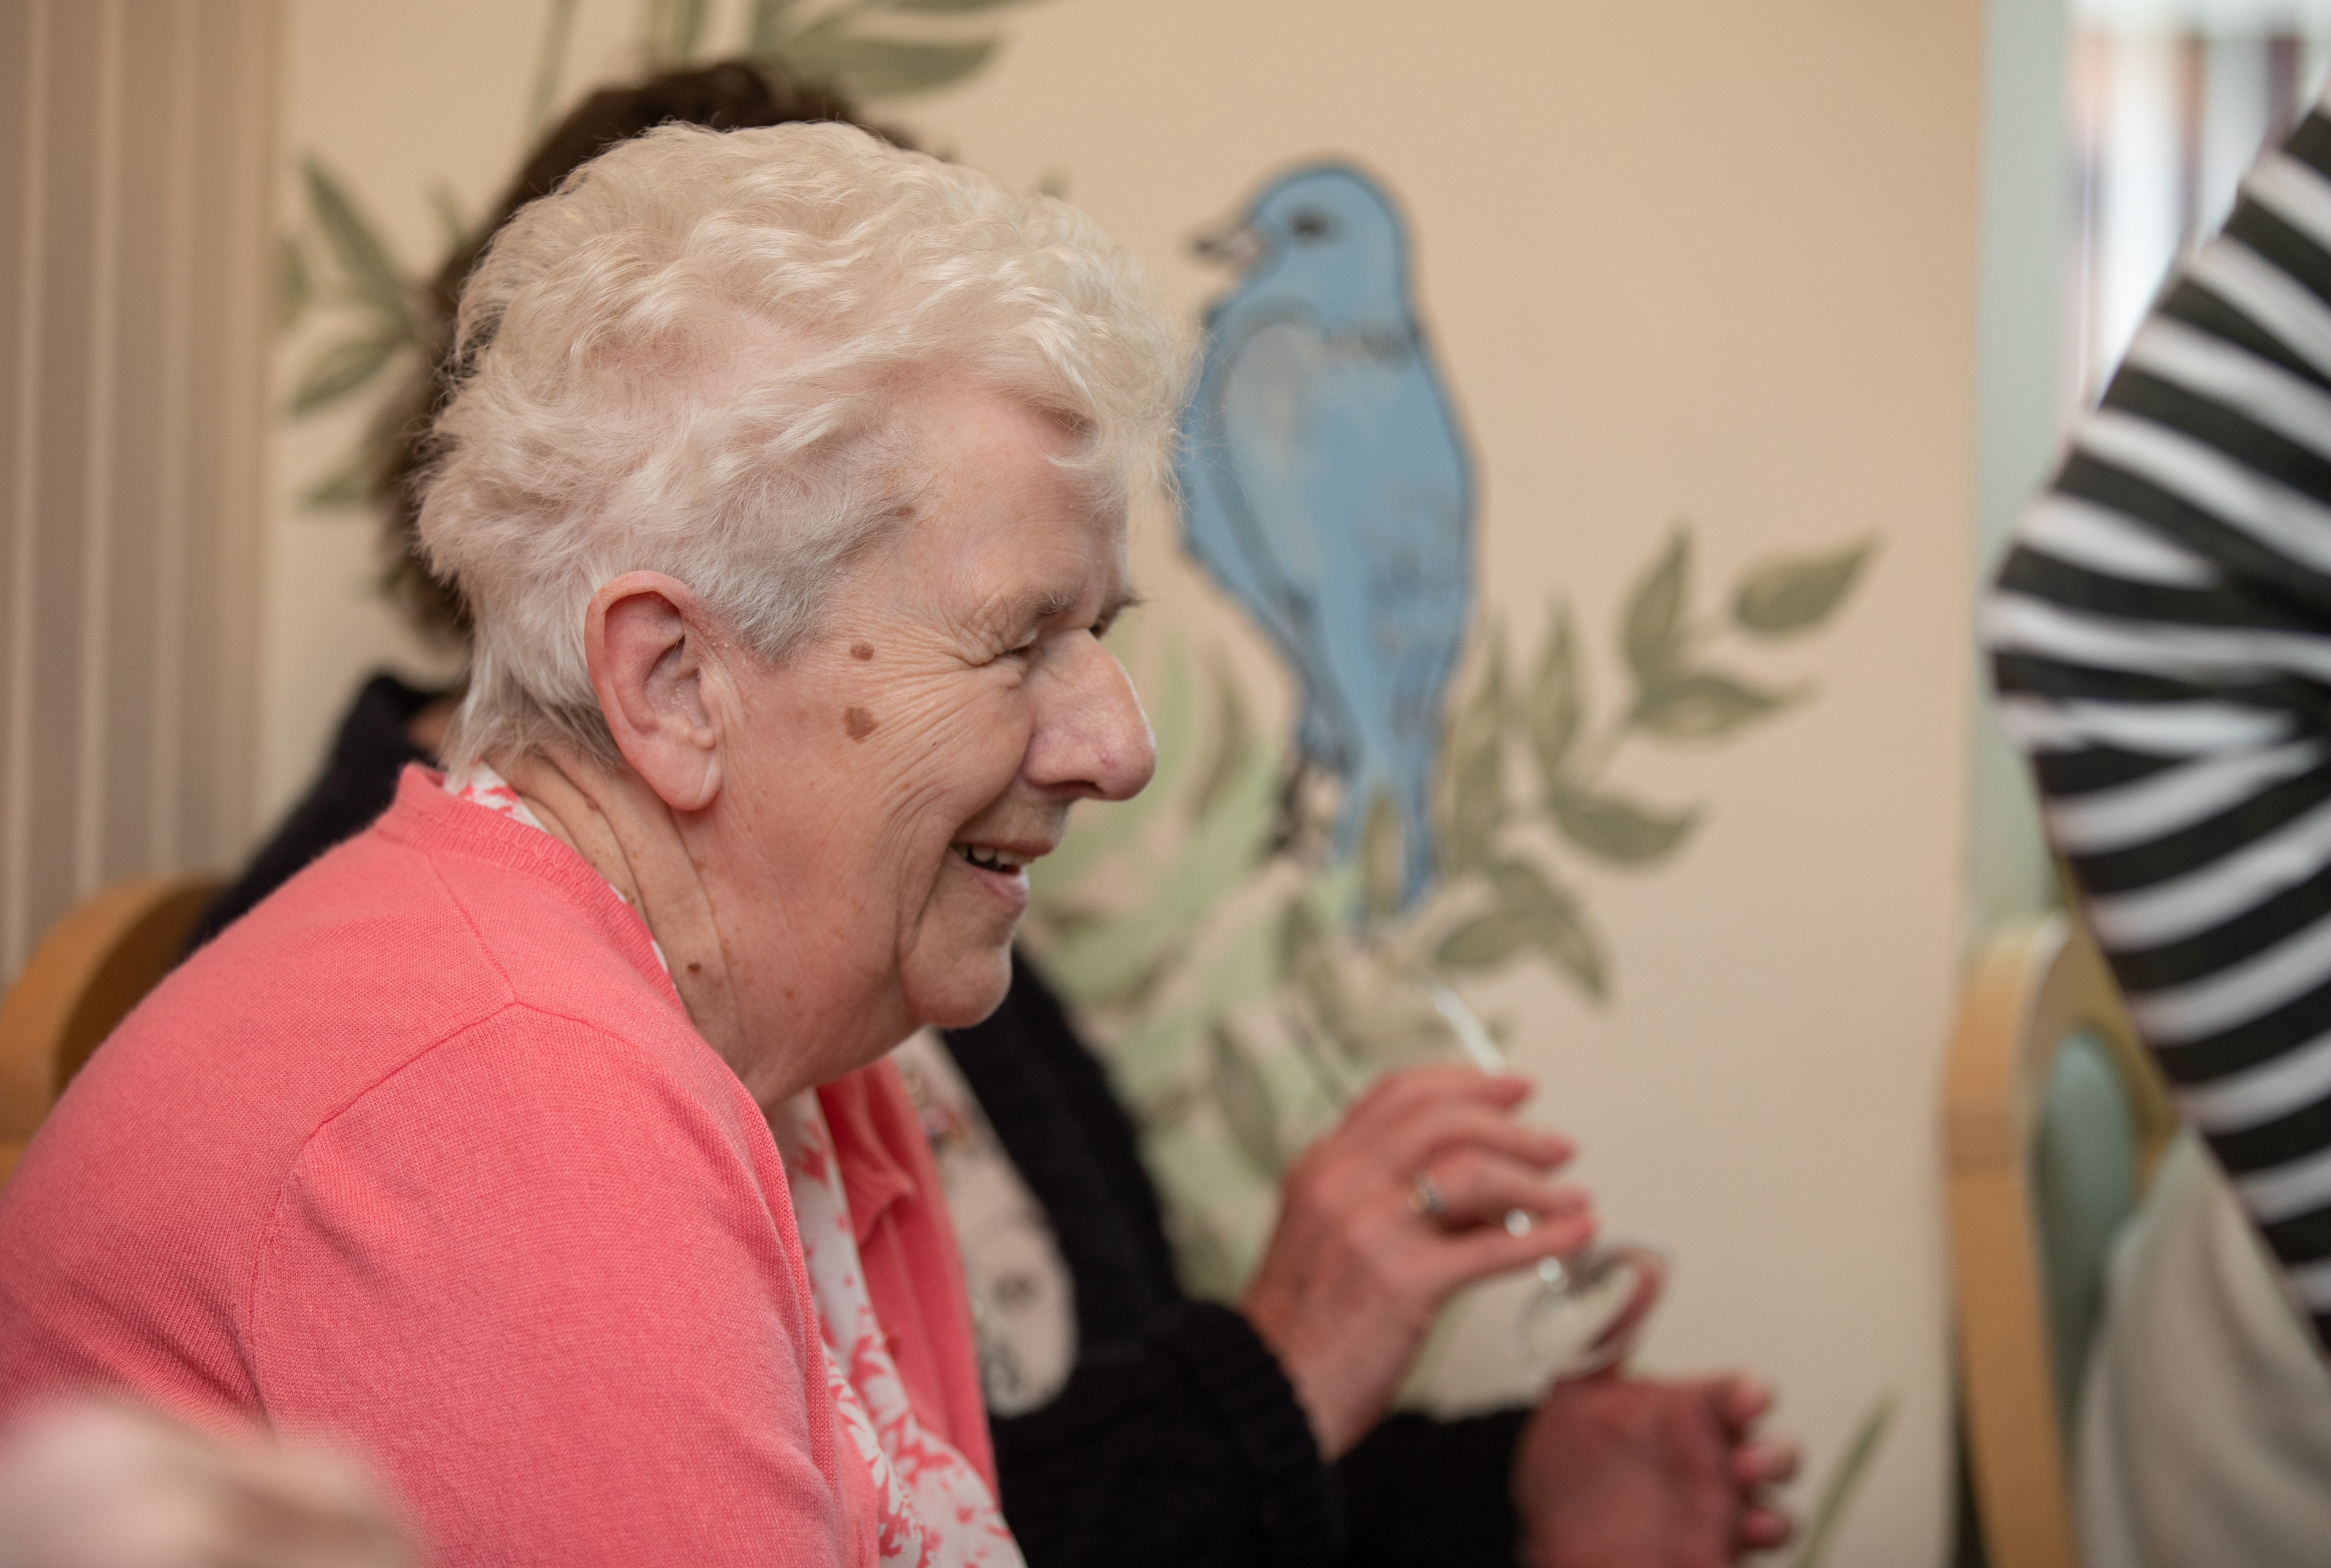 Care home resident and staff member